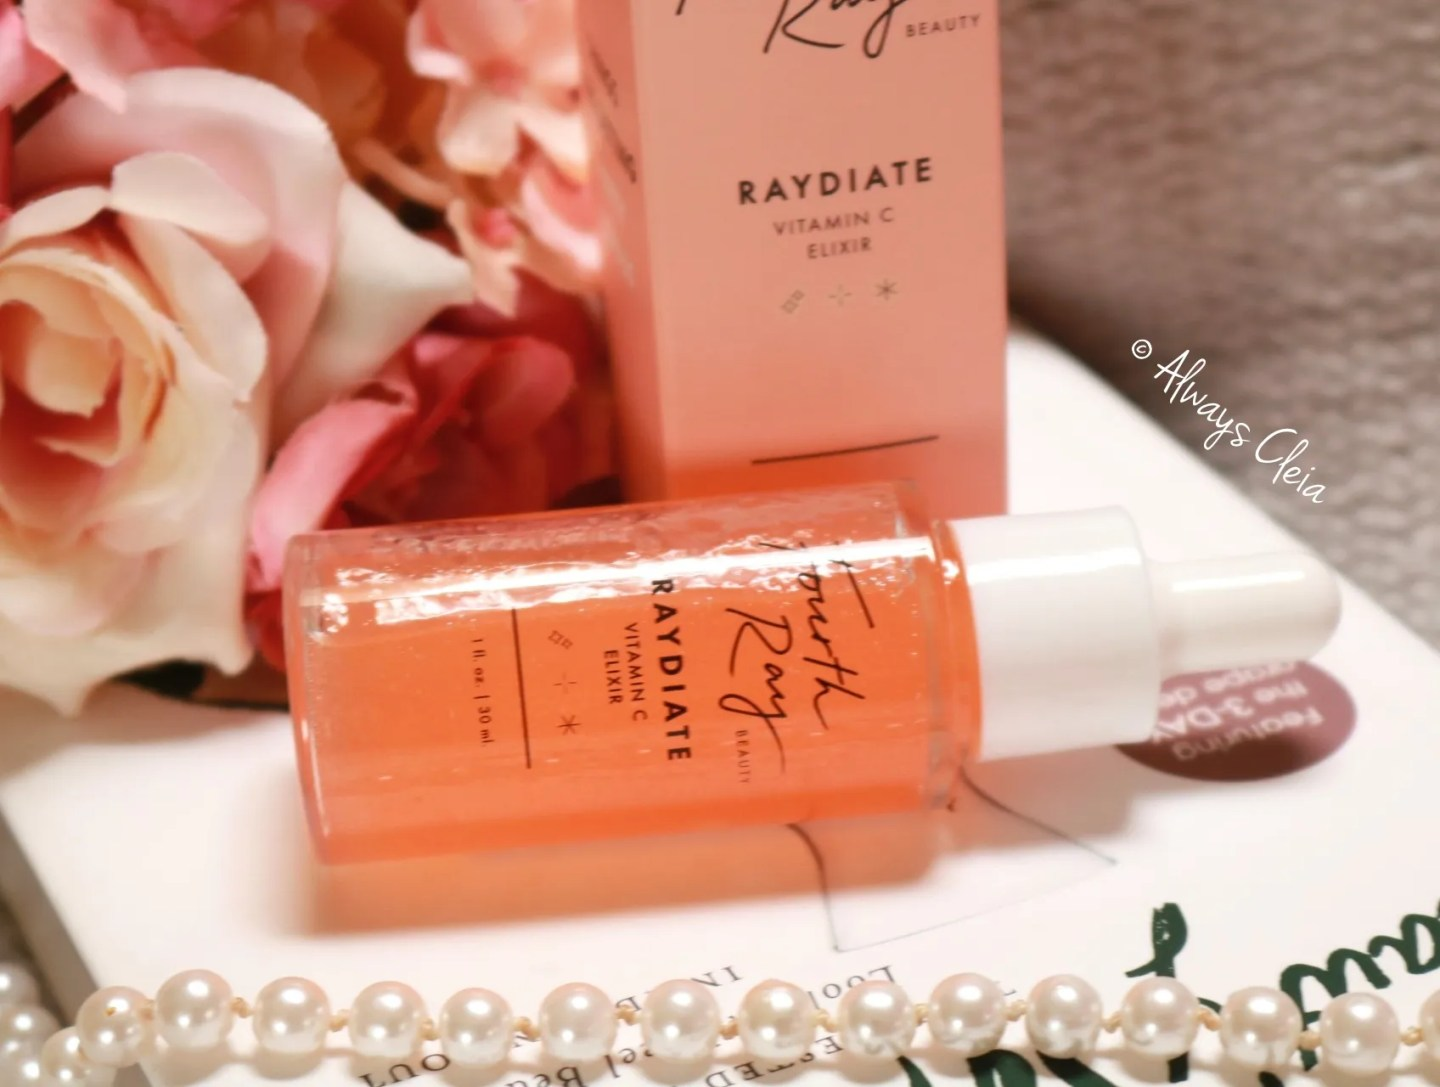 Raydiate Fourth Ray Beauty Review